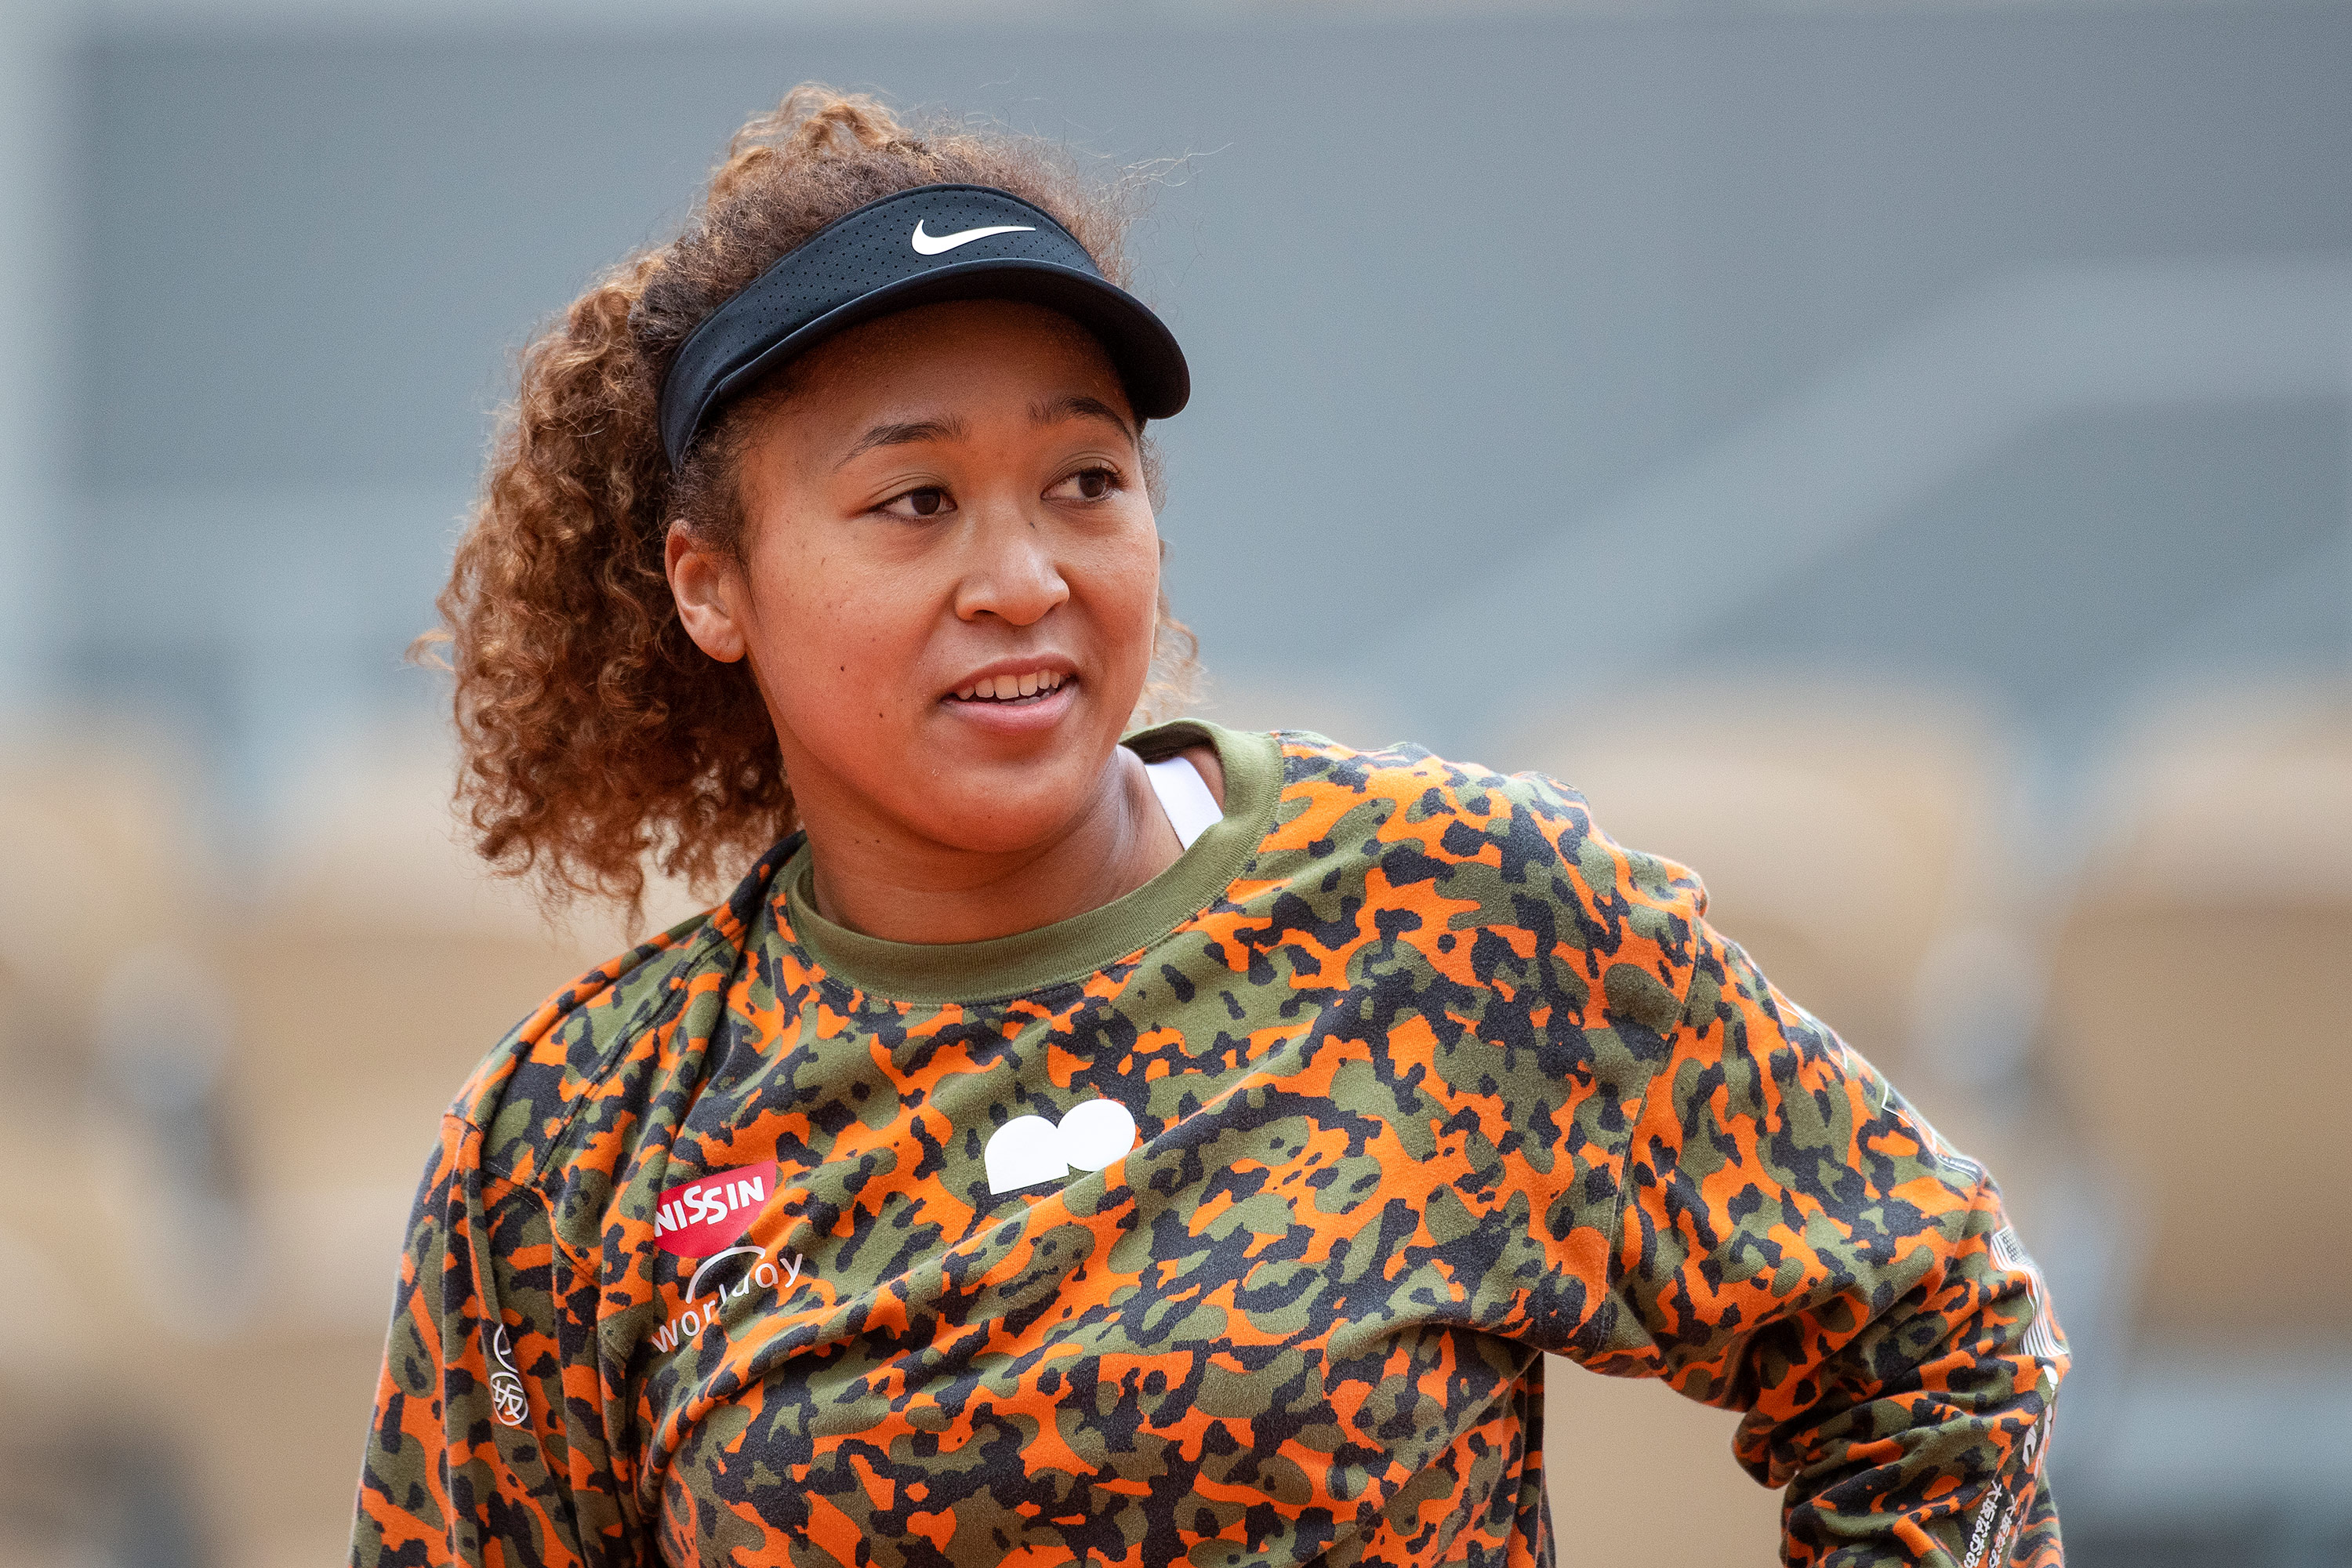 Naomi Osaka: Nike backs tennis star after she withdraws from French Open |  CNN Business